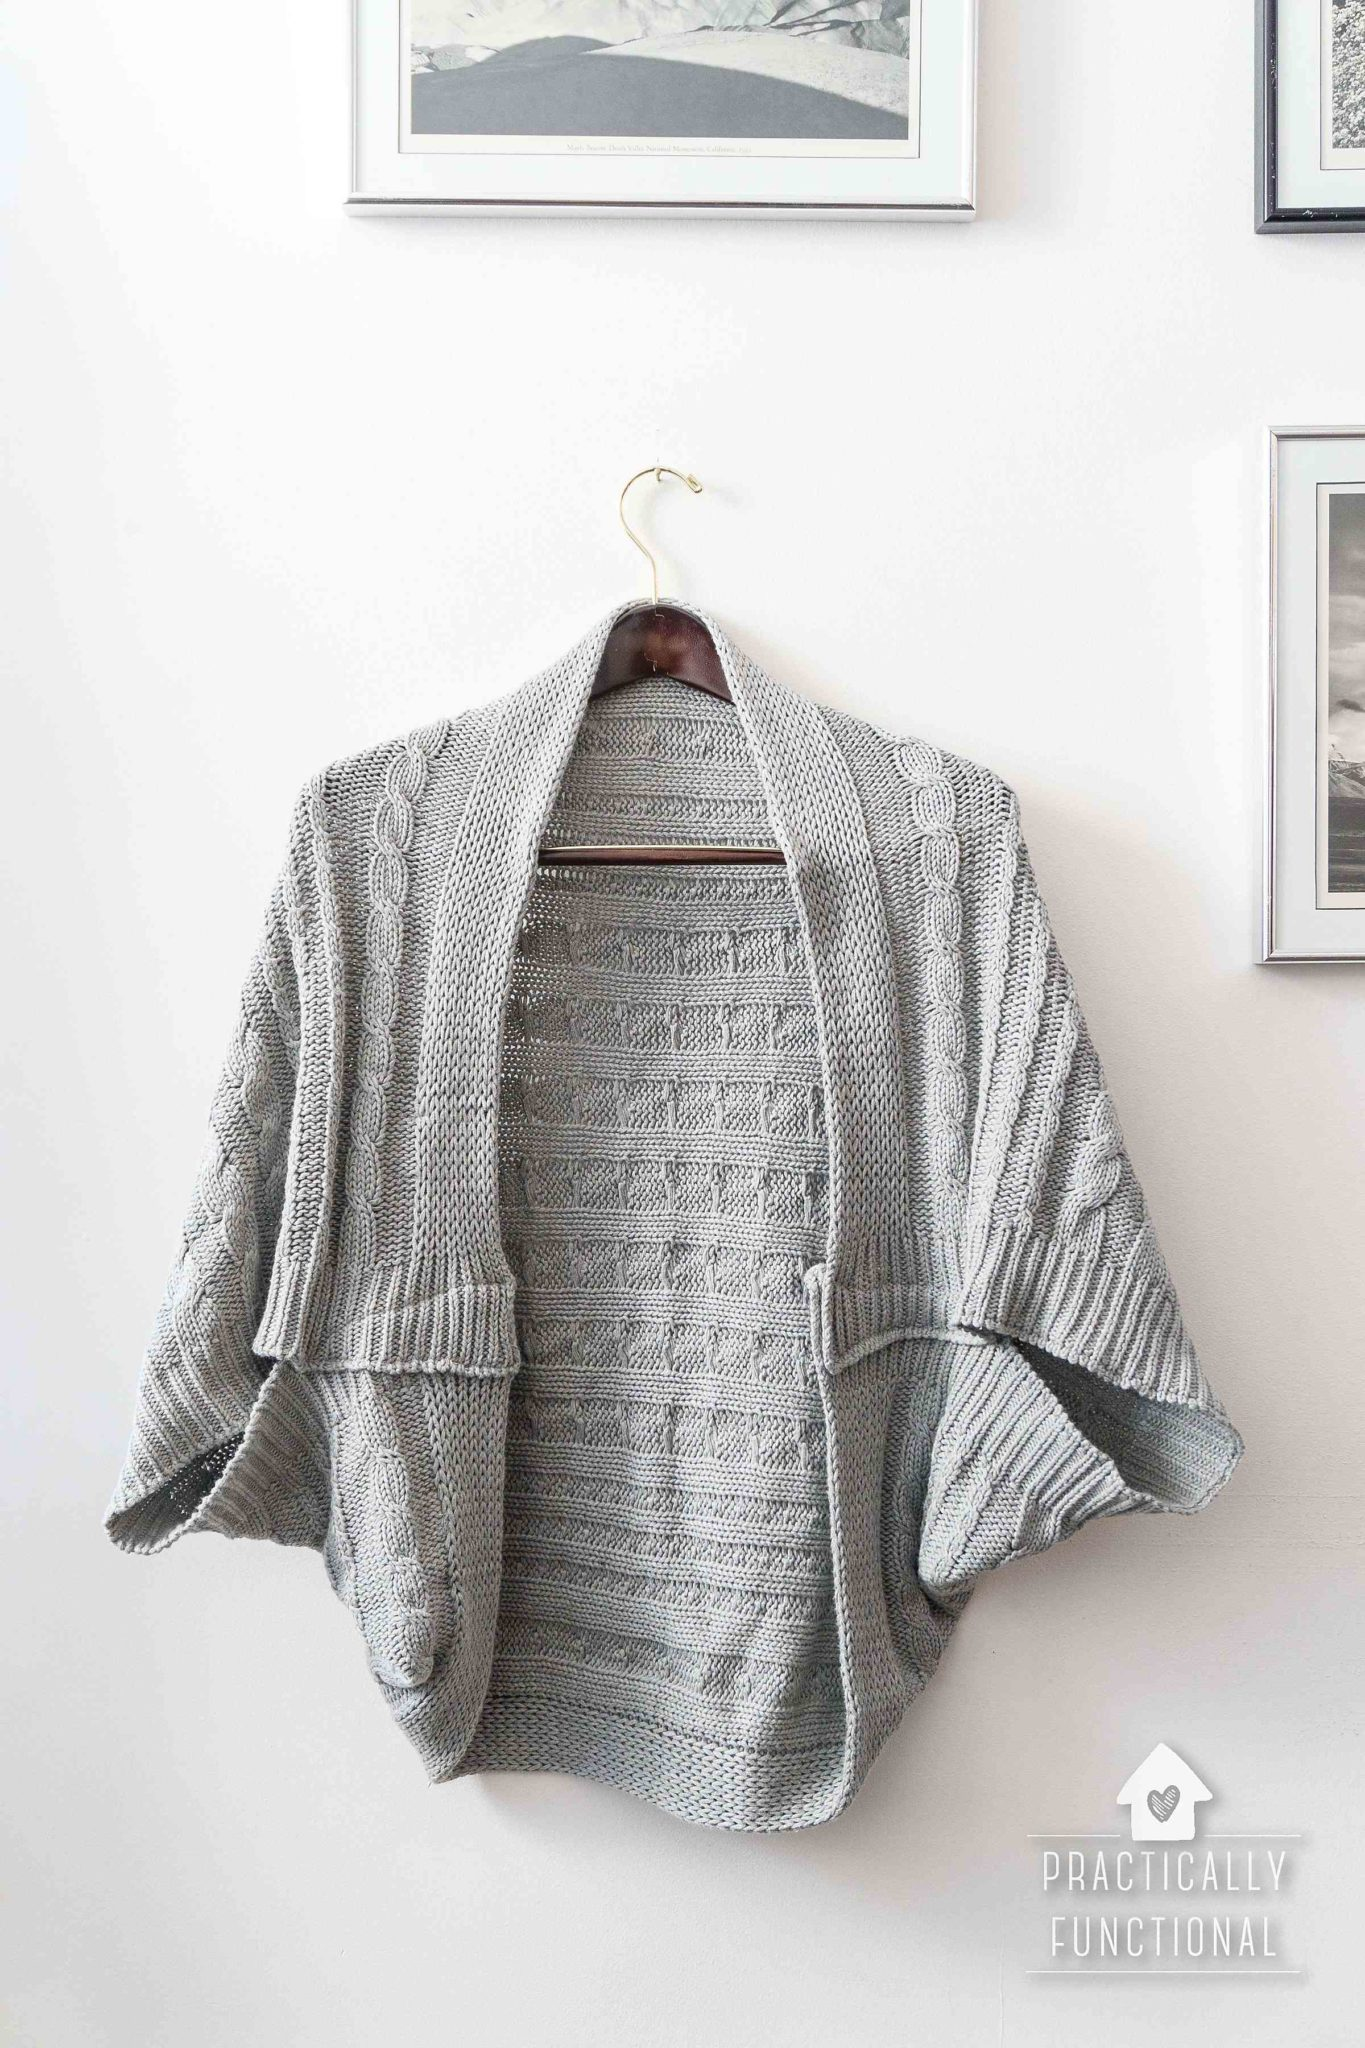 Turn A Blanket Into A DIY Cocoon Cardigan – Practically Functional